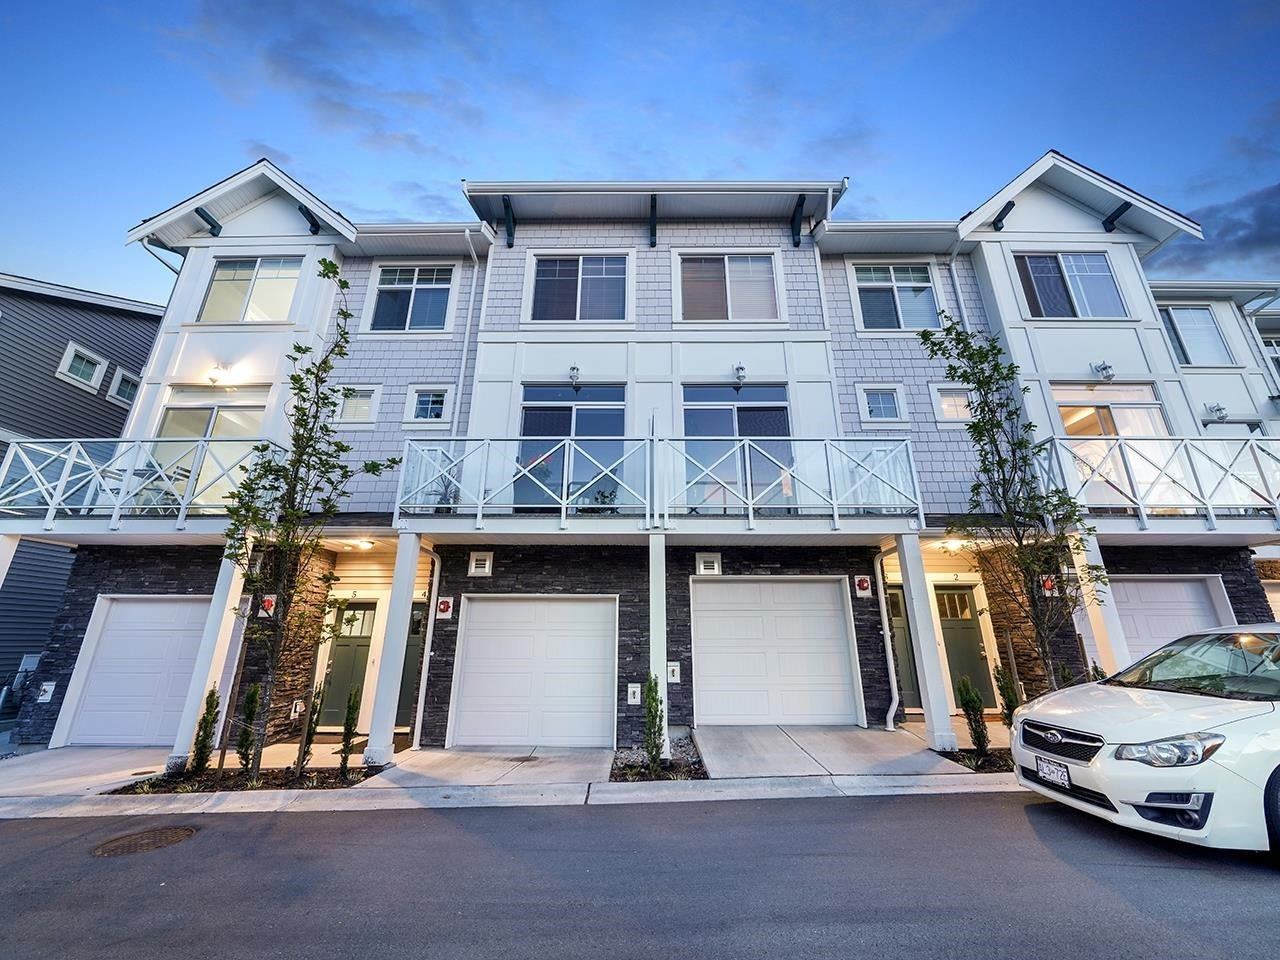 5 21102 76 AVENUE - Willoughby Heights Townhouse for sale, 3 Bedrooms (R2627633) - #1